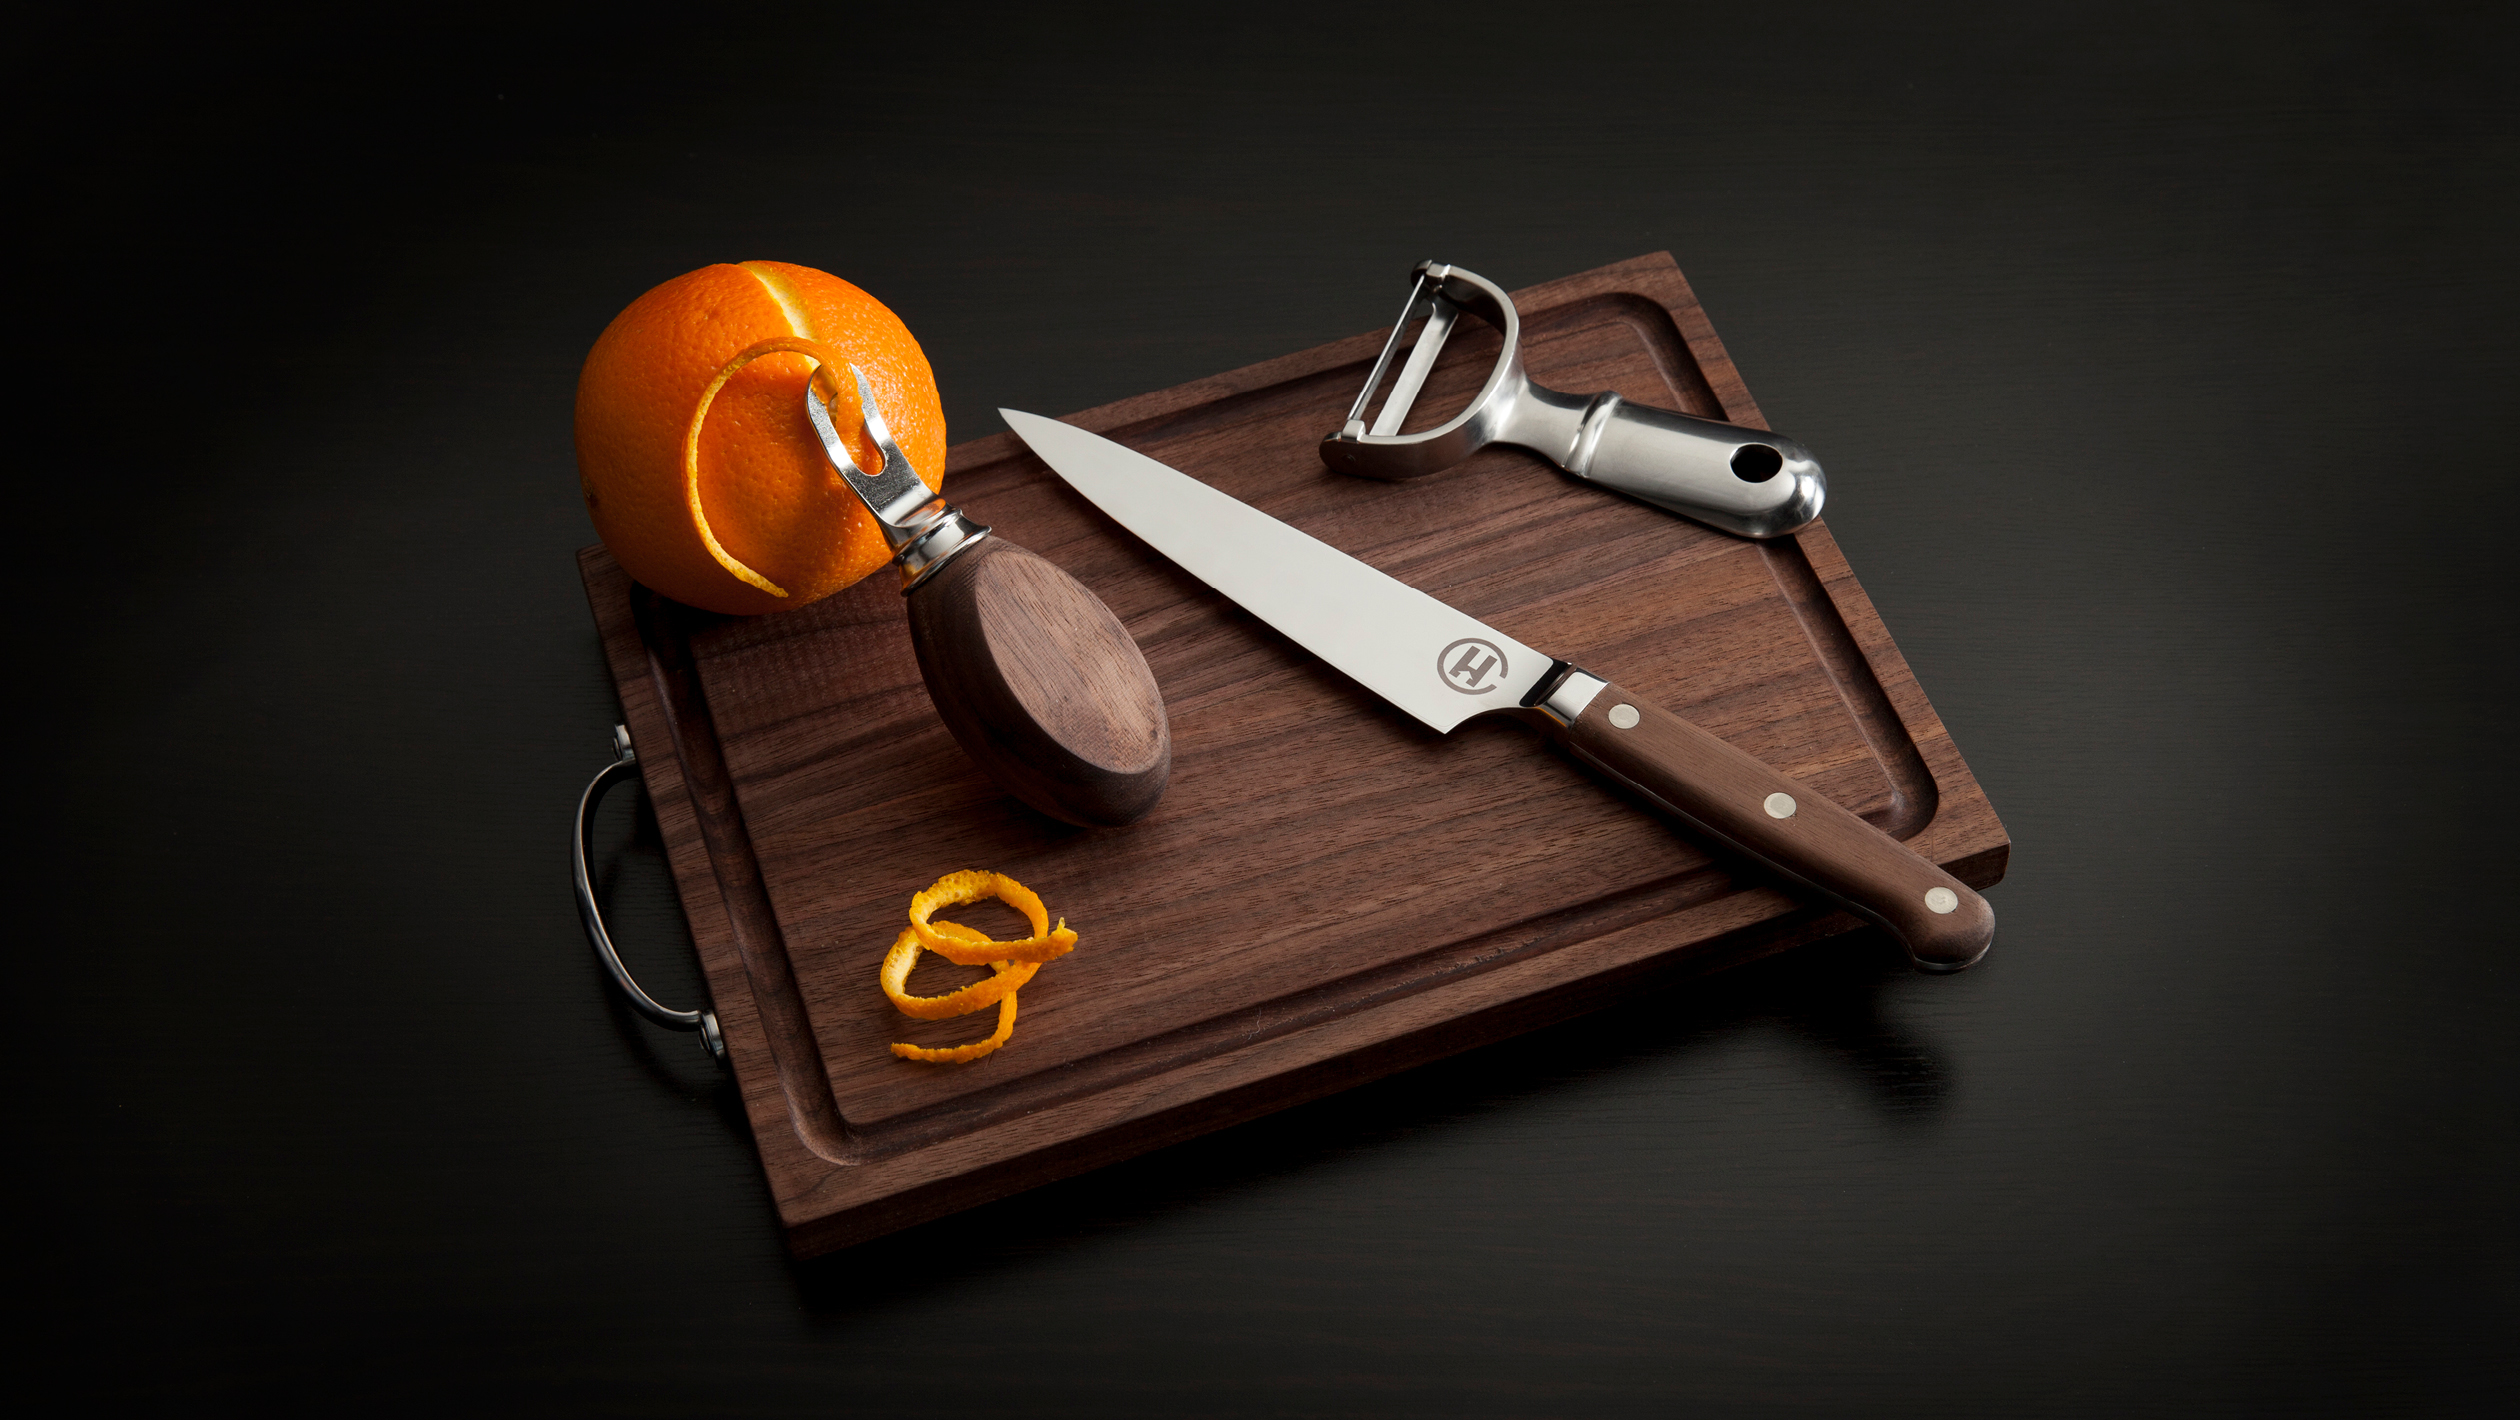 112db337455 Bartenders Share Their Top 7 Holiday Gift Picks